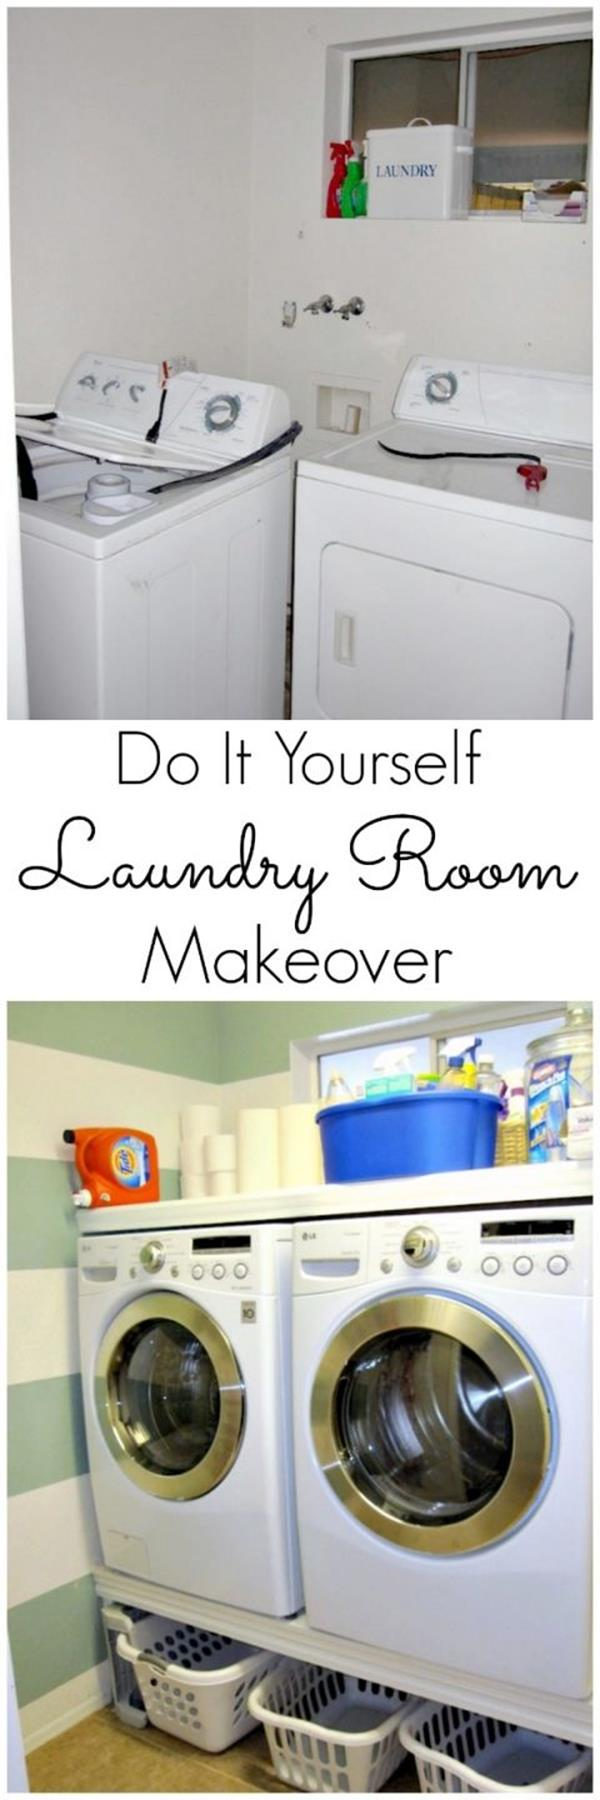 DIY Small Laundry Room Makeovers On a Budget 21